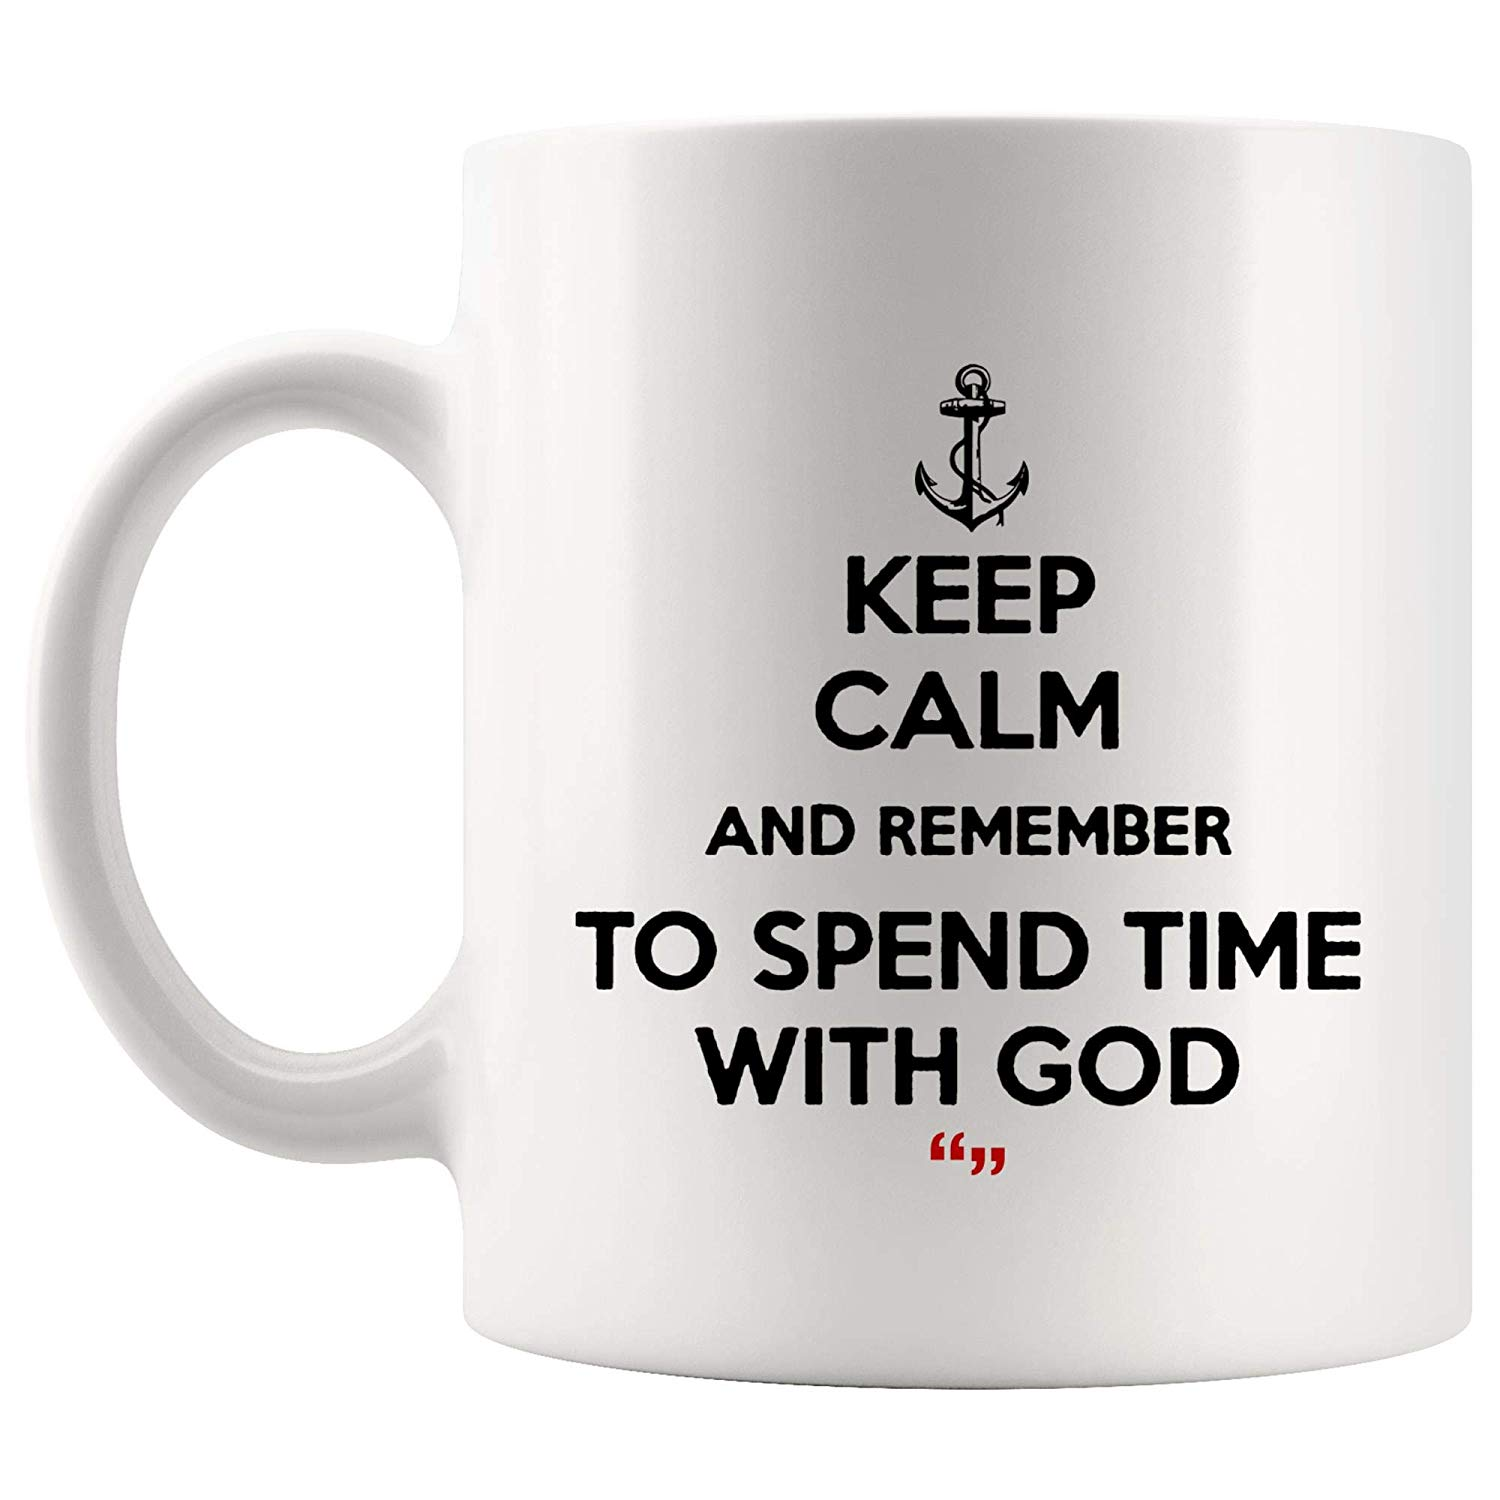 Amazon.com: Keep Calm Remember Spend Time With God Pray Coffee Mug ... #coffeeTime